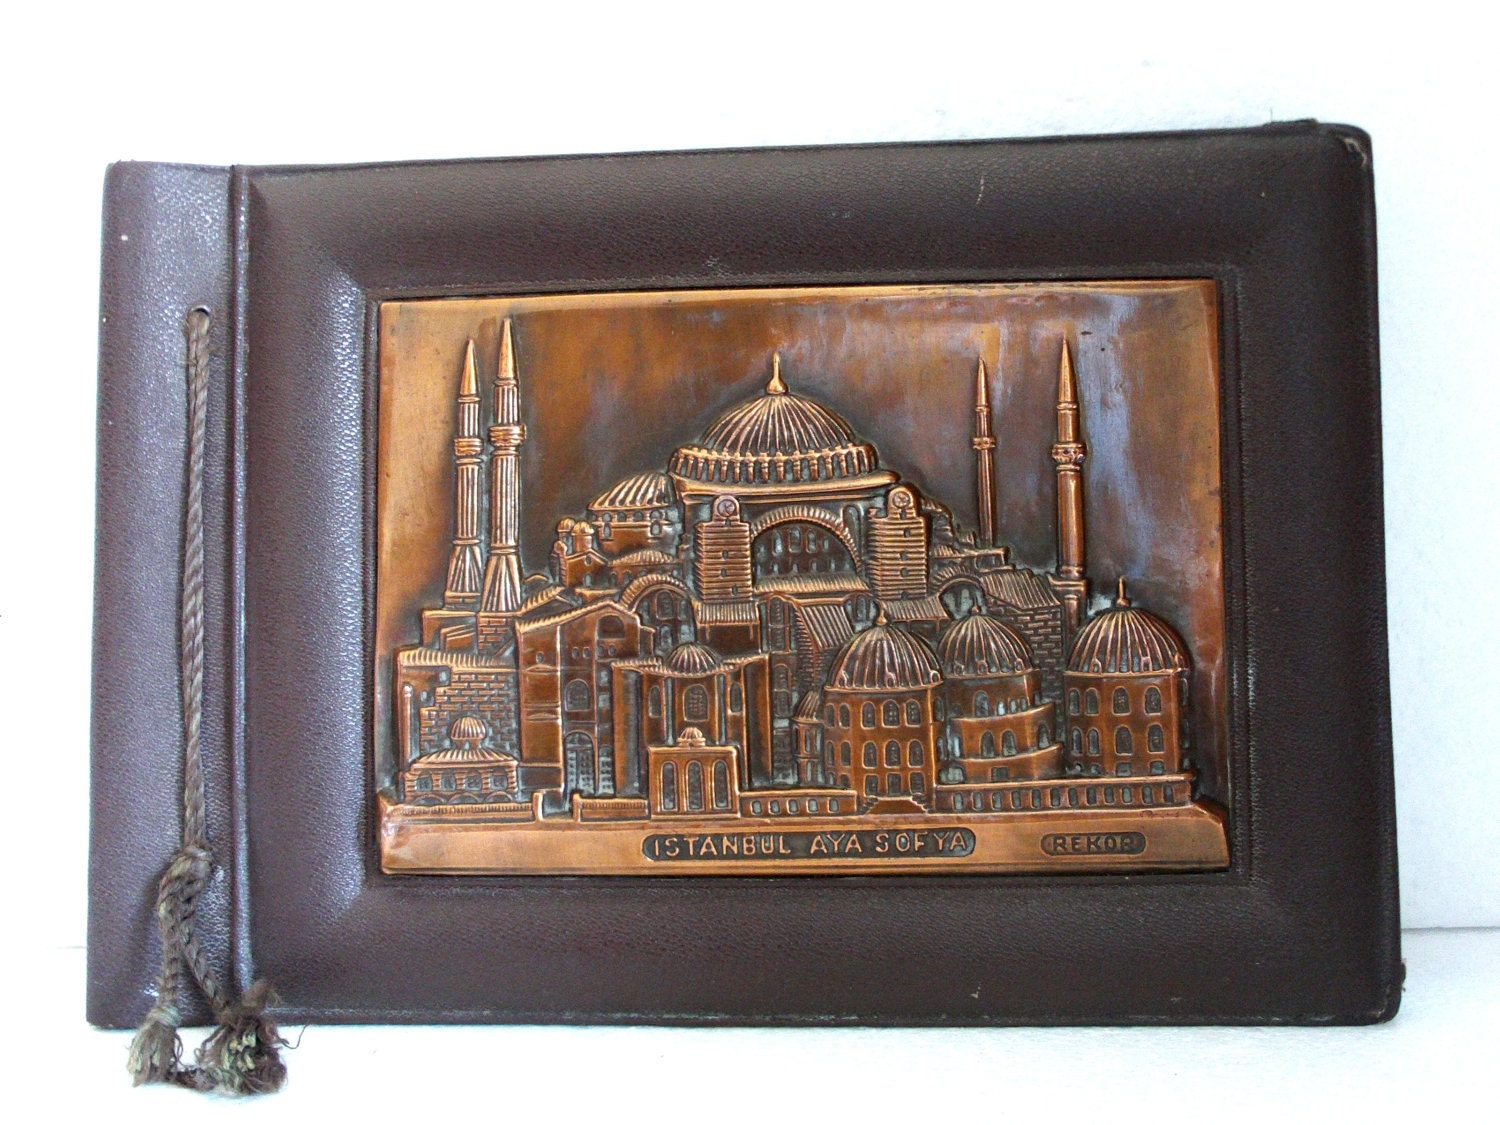 Old Photo ALBUM ornate COPPER relief PLAQUE 3D Hagia Sophia Istanbul - Hard binding - Hammered metal book cover - Scrapbooking storage - cabinetocurios